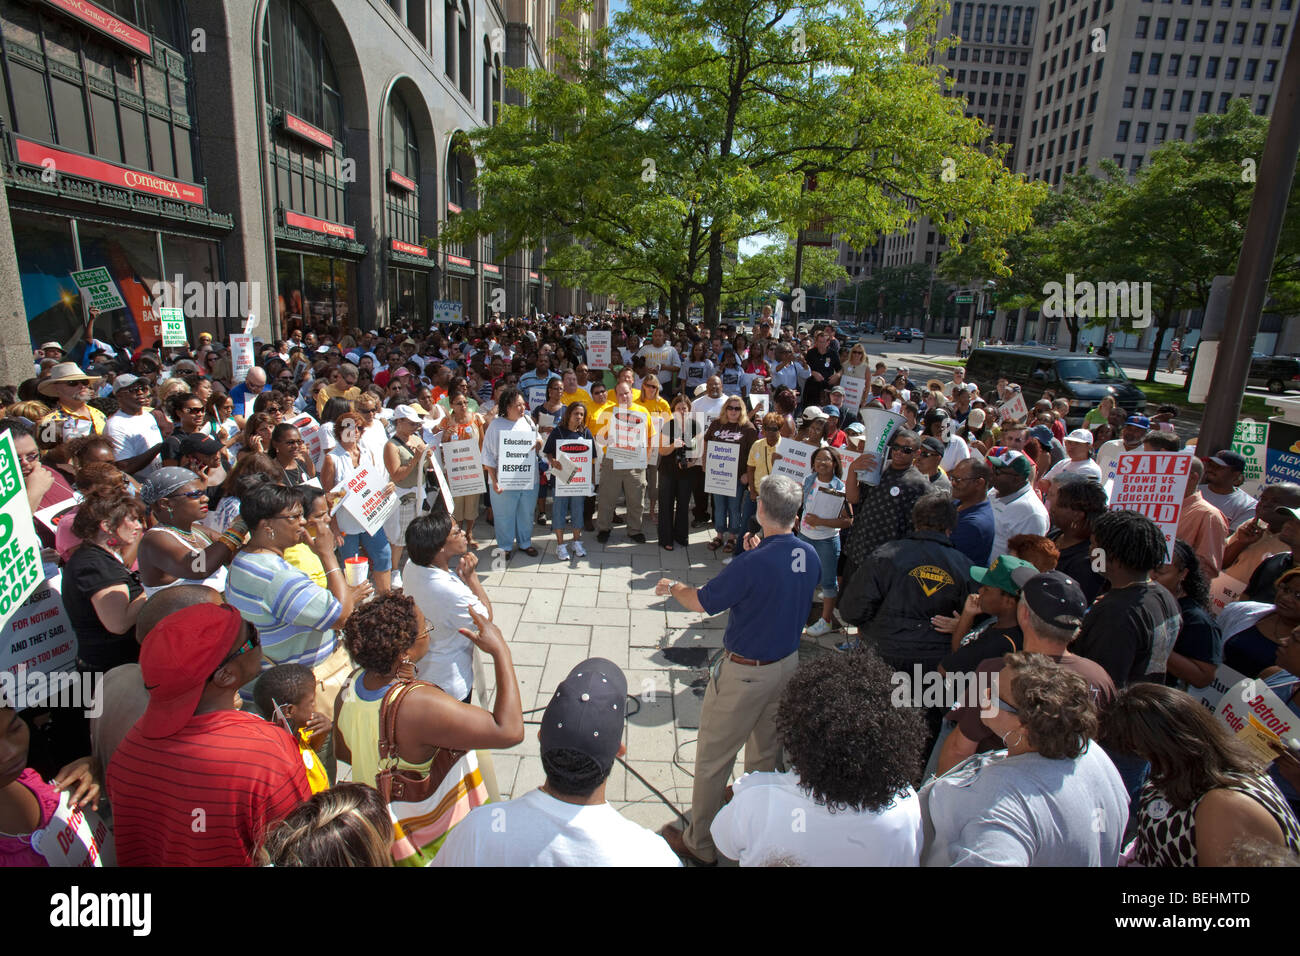 Detroit, Michigan - Detroit public school teachers rally against demands for wage cuts and other concessions. - Stock Image